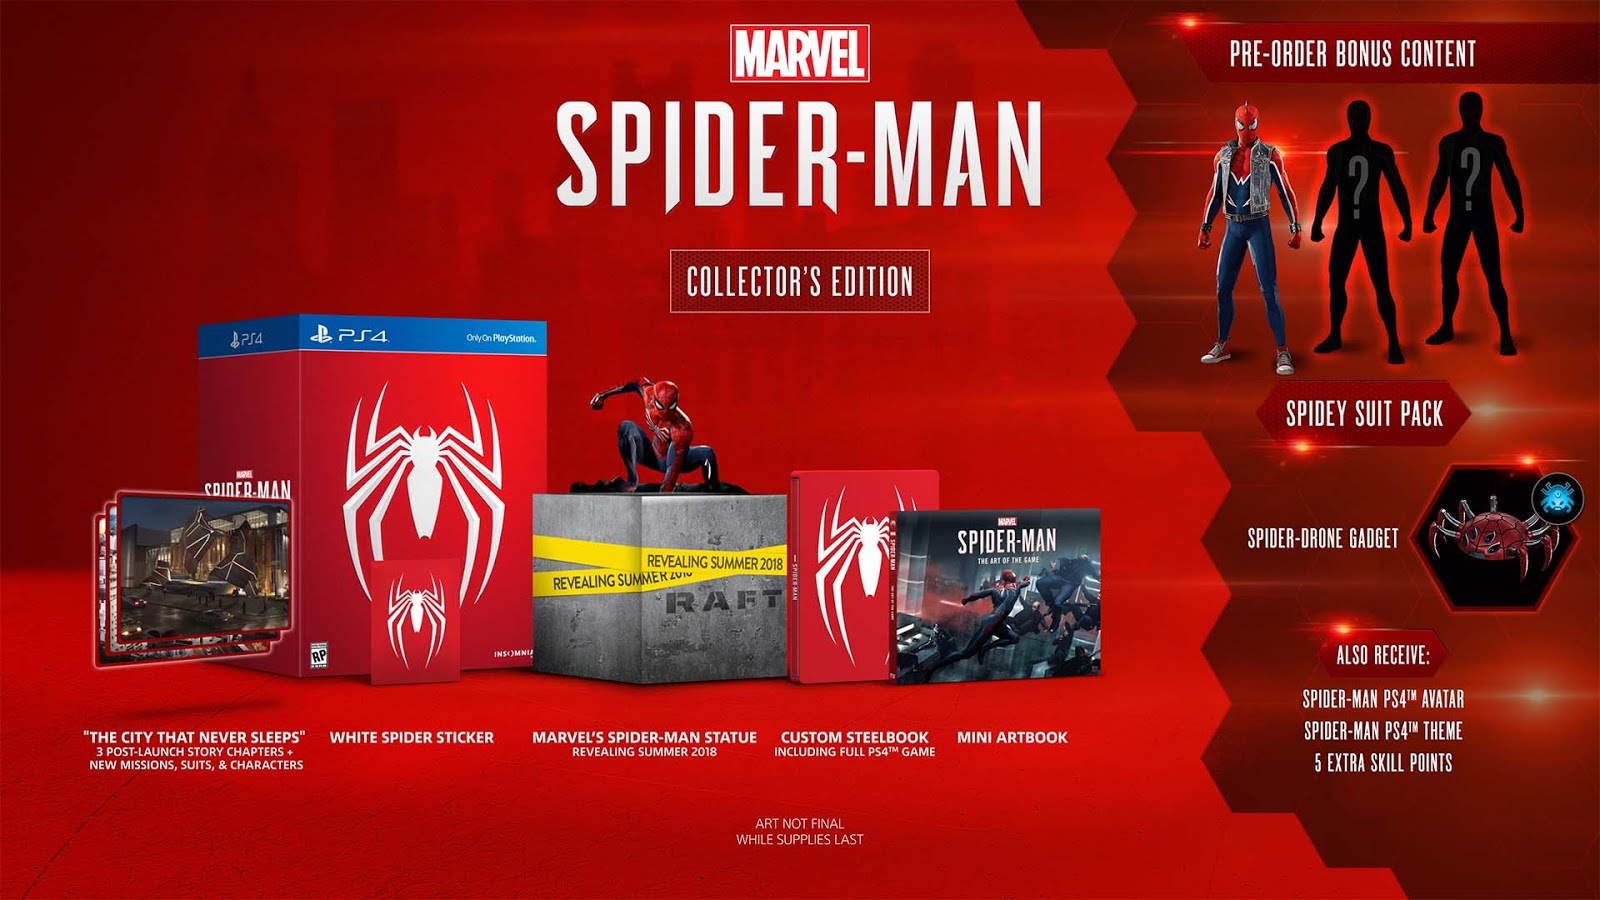 PS4 Exclusive Spider-Man Price and Release Date Revealed! - The